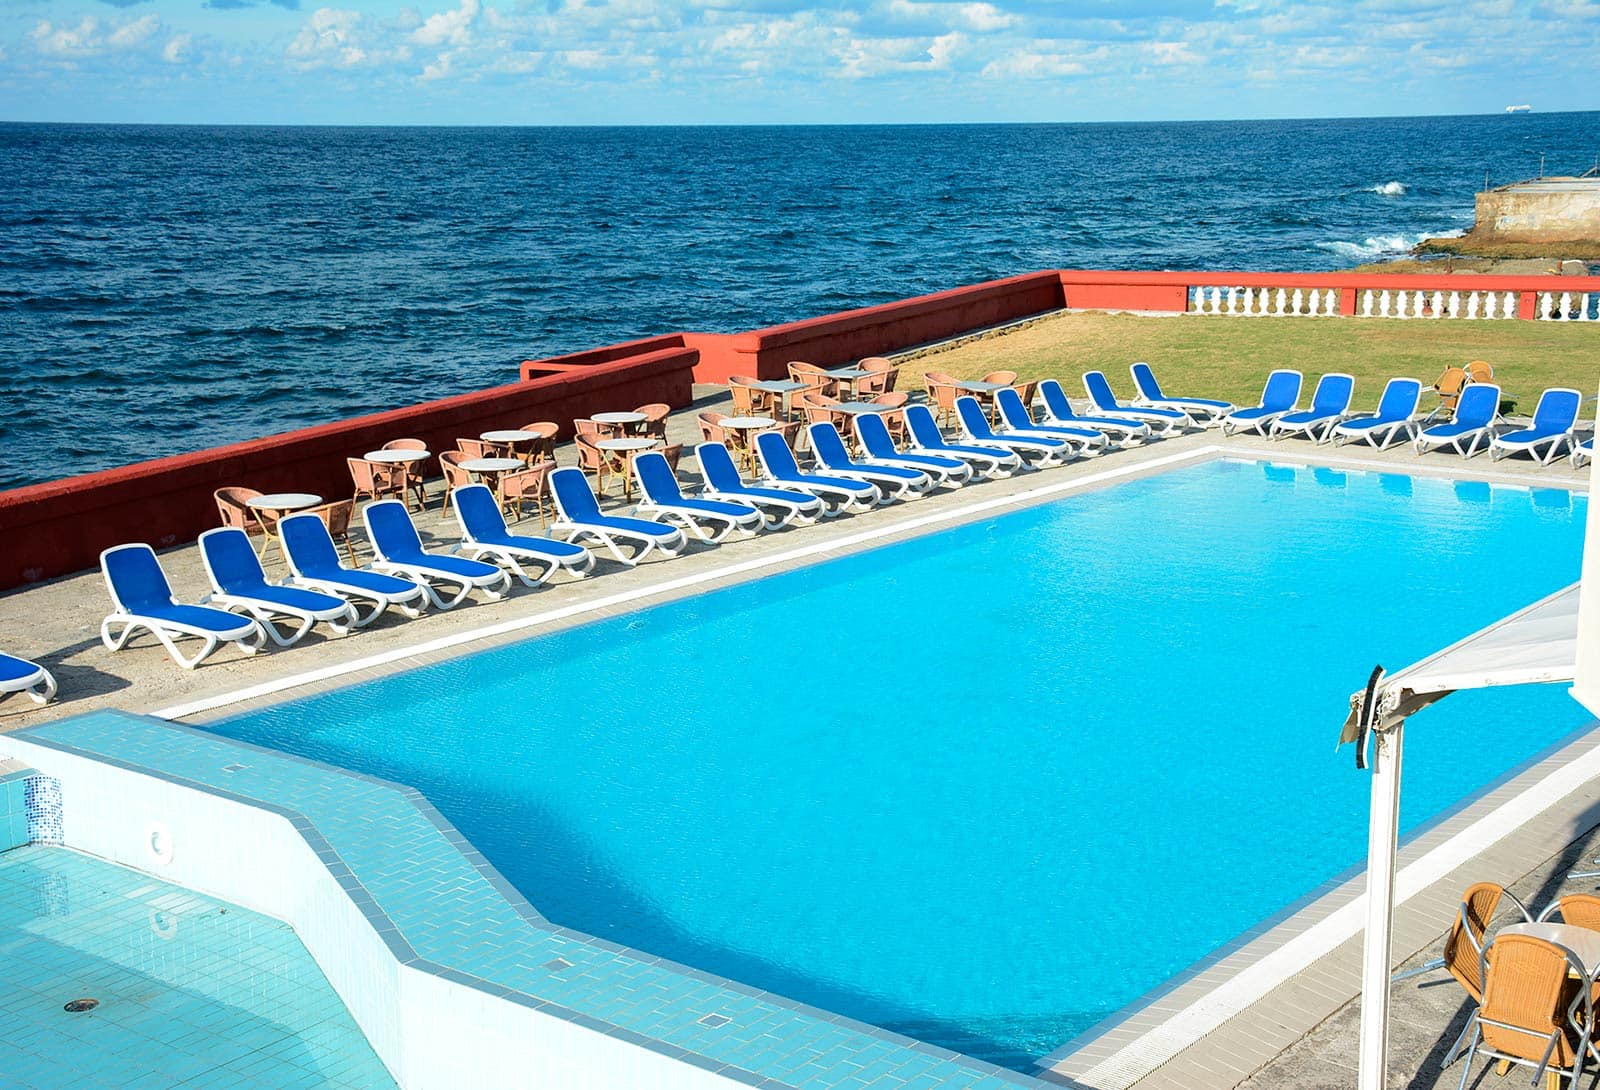 Swimming pool hotel Chateau Miramar by Be Live